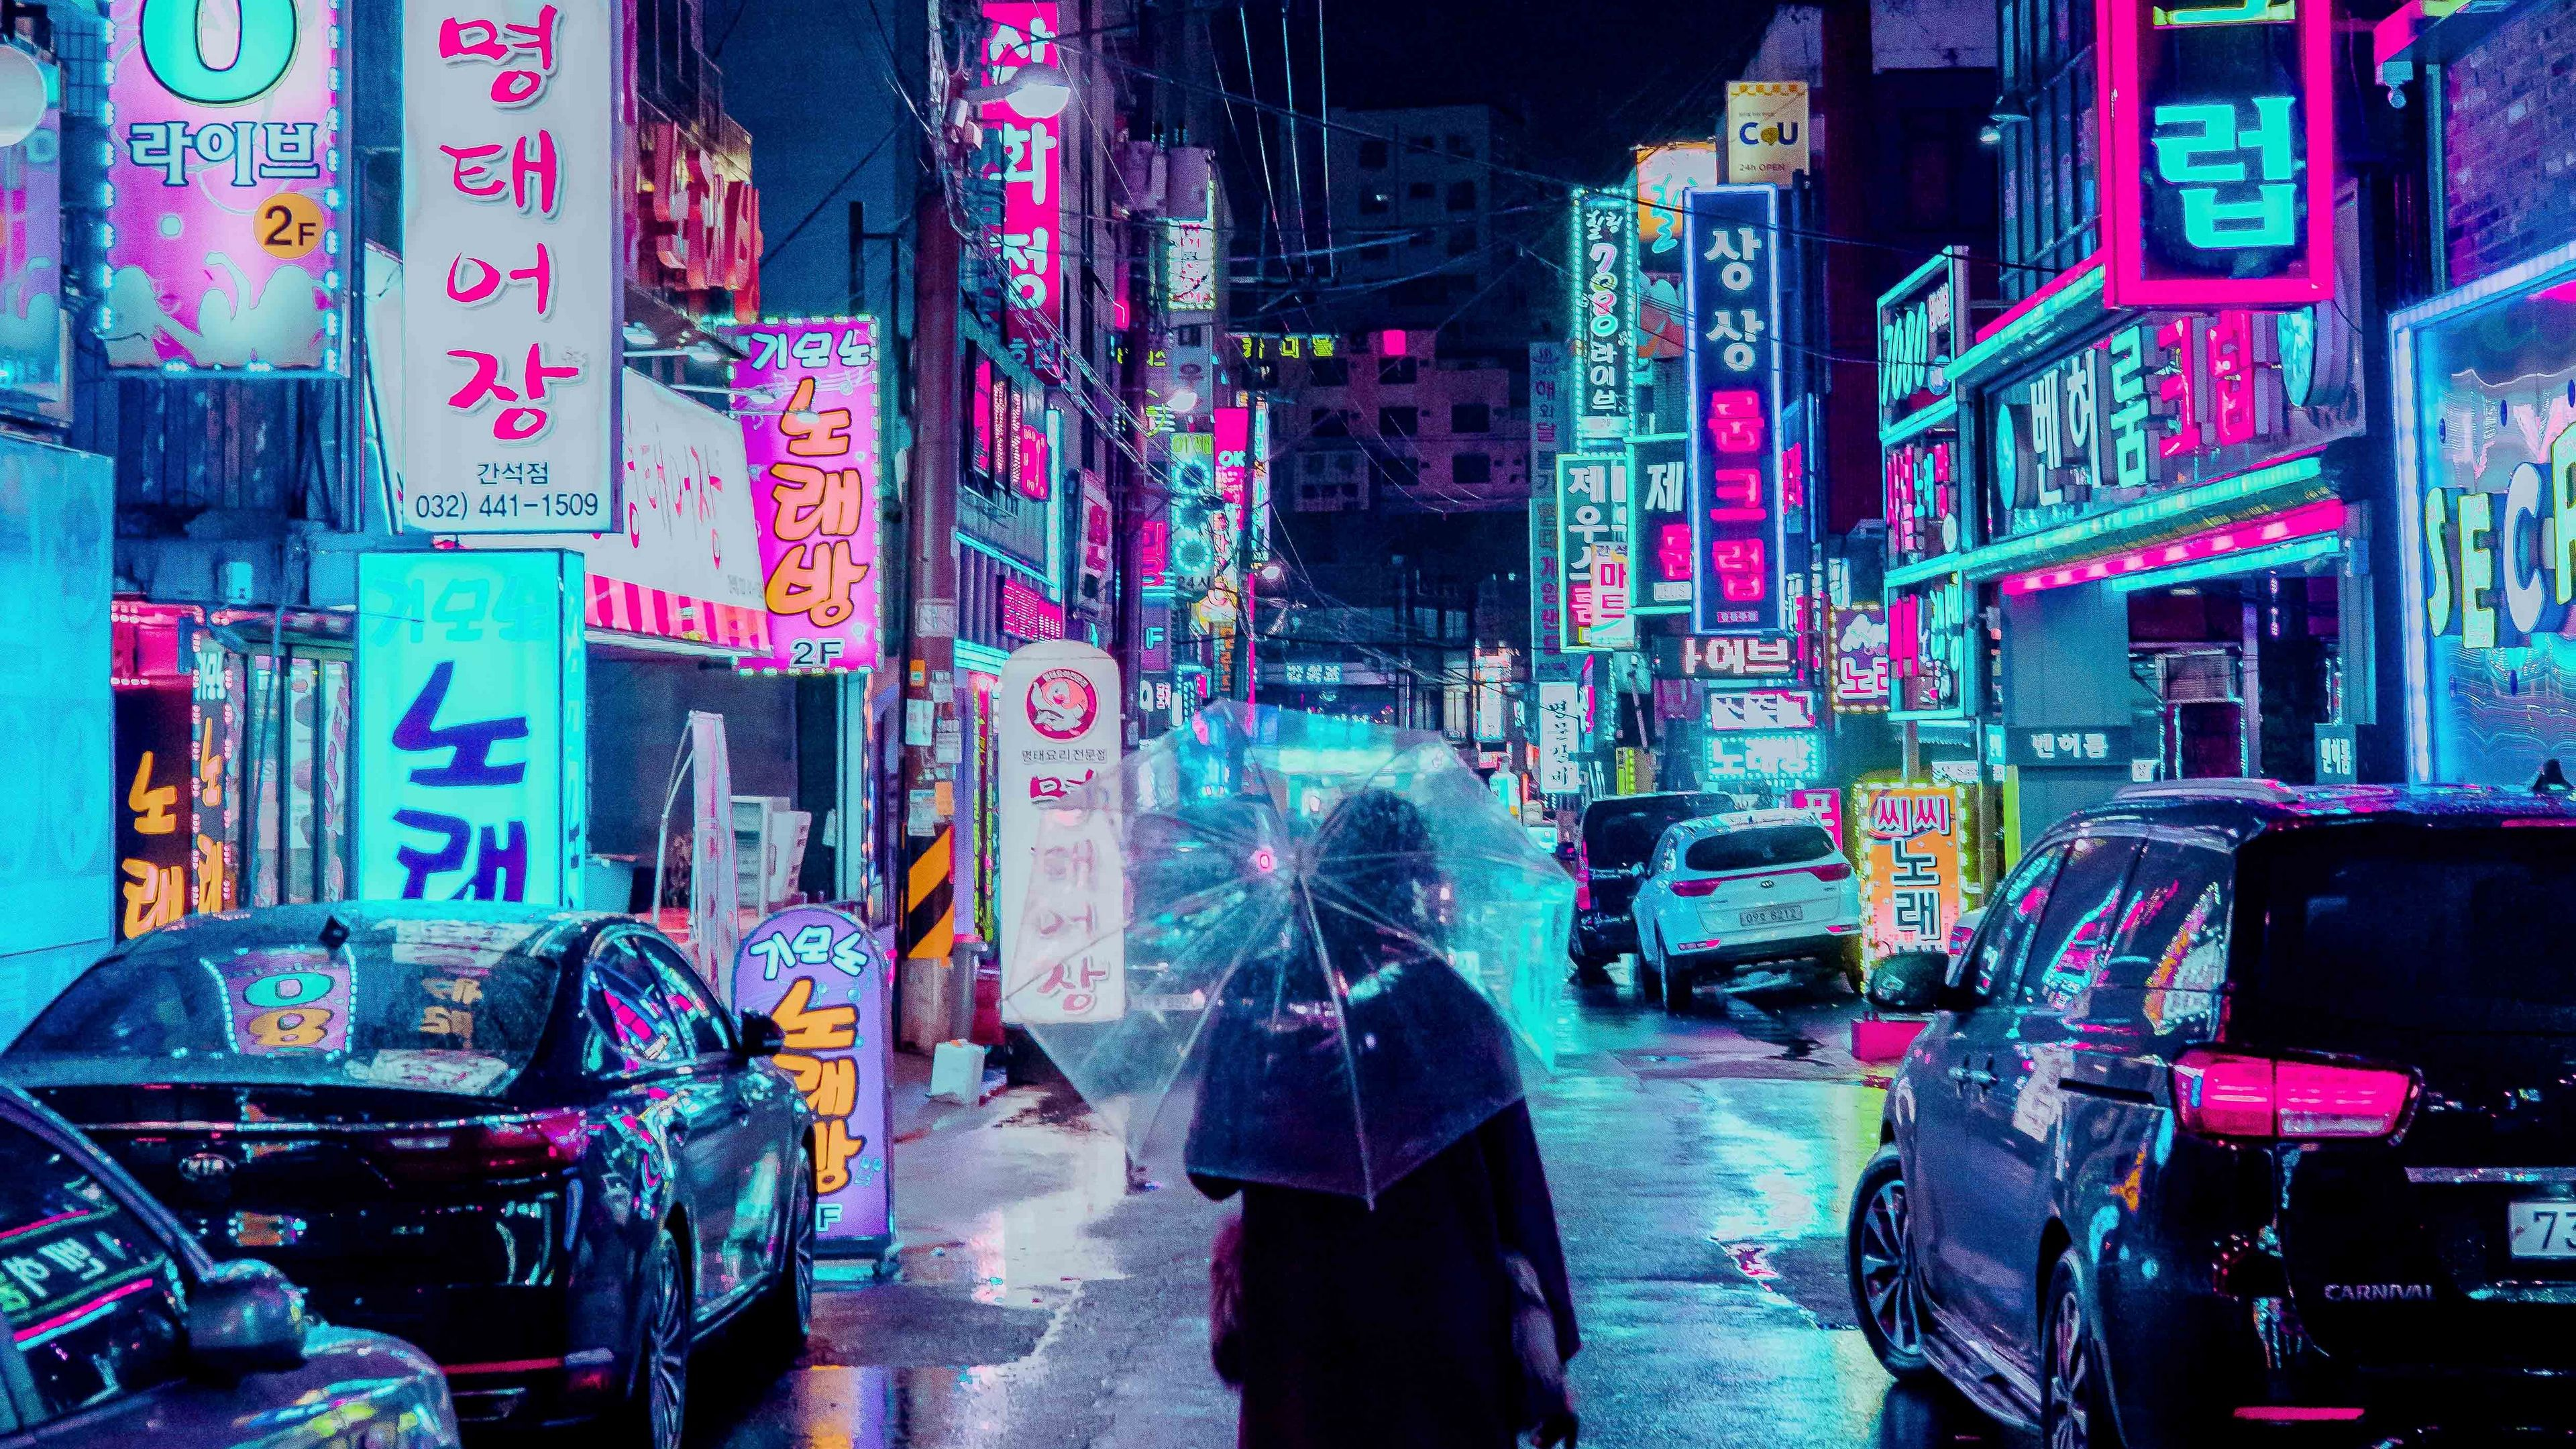 Wallpaper 4k Night City Street Umbrella Man Signboards Lighting Neon 4k Night City Street Umbrella In 2020 Cyberpunk City Cyberpunk Aesthetic Anime City